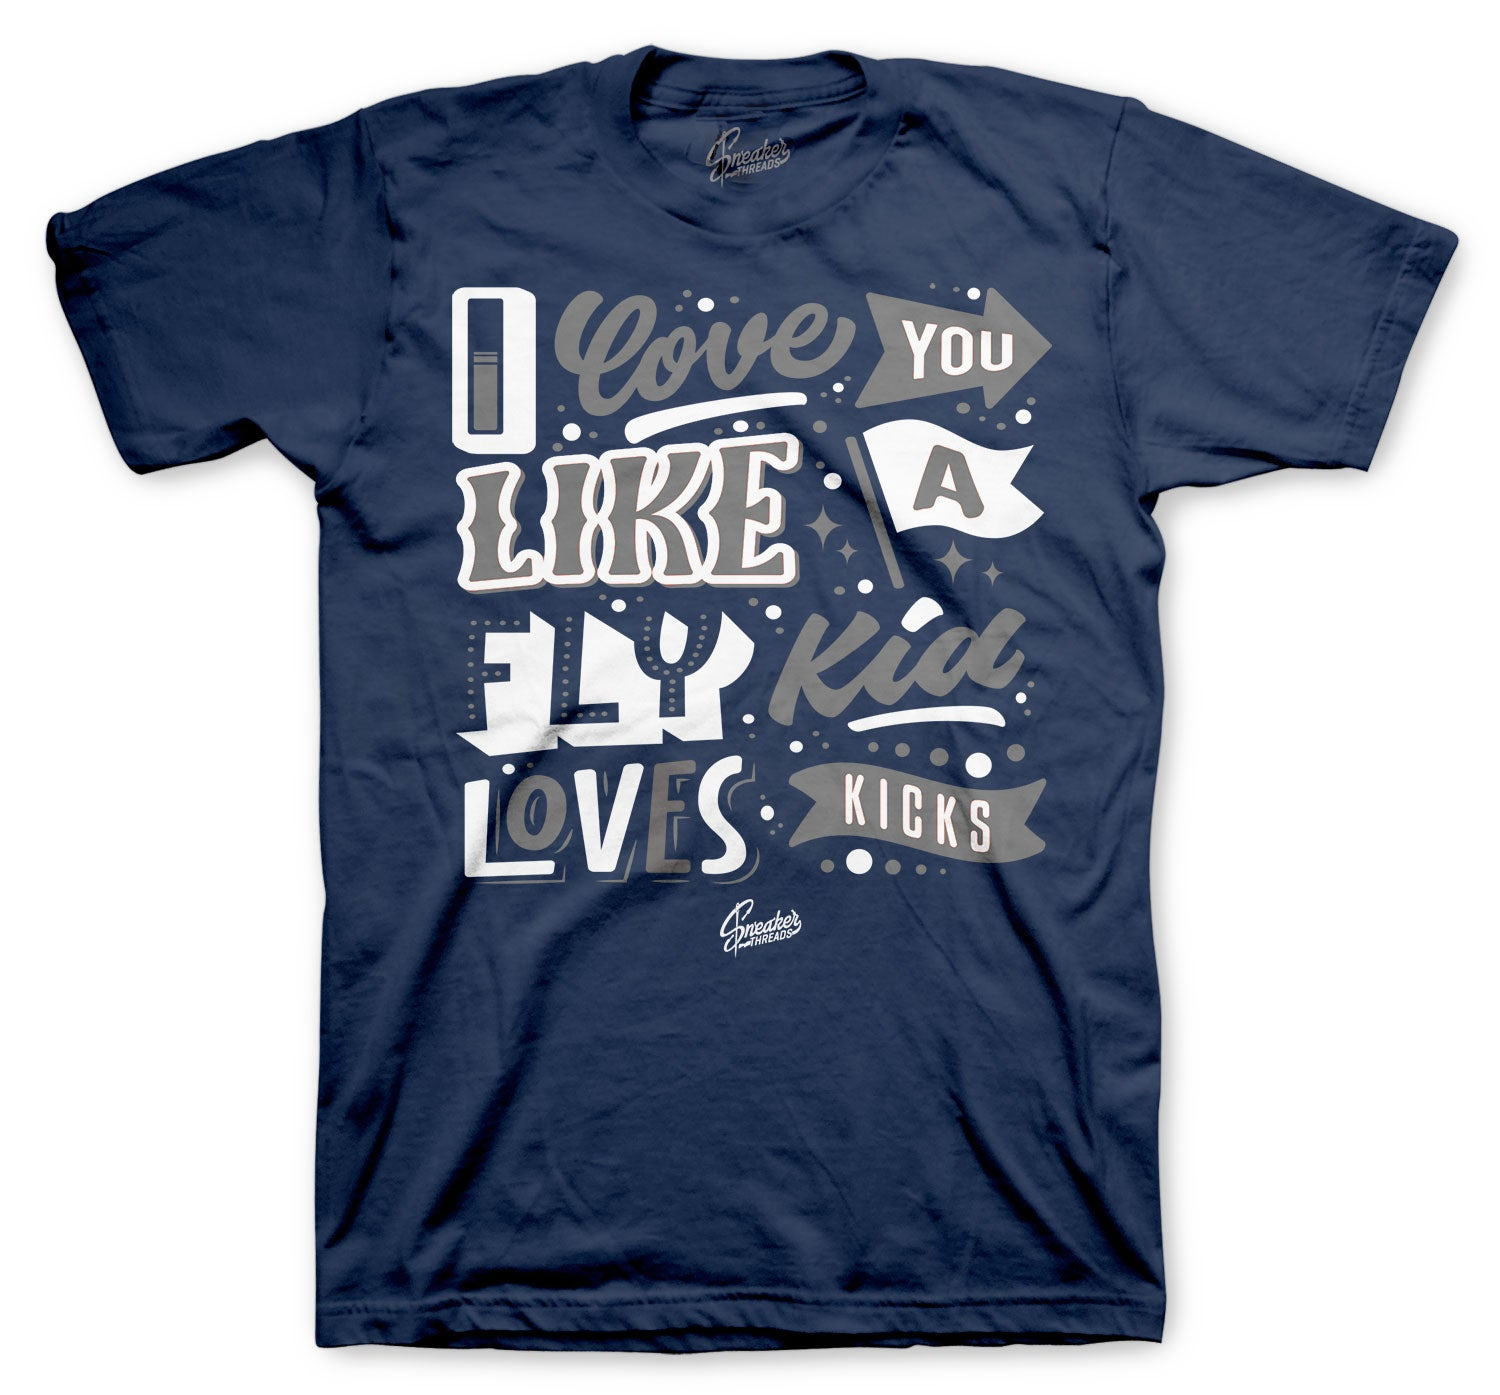 Jordan 13 Flint Love Kicks Shirt